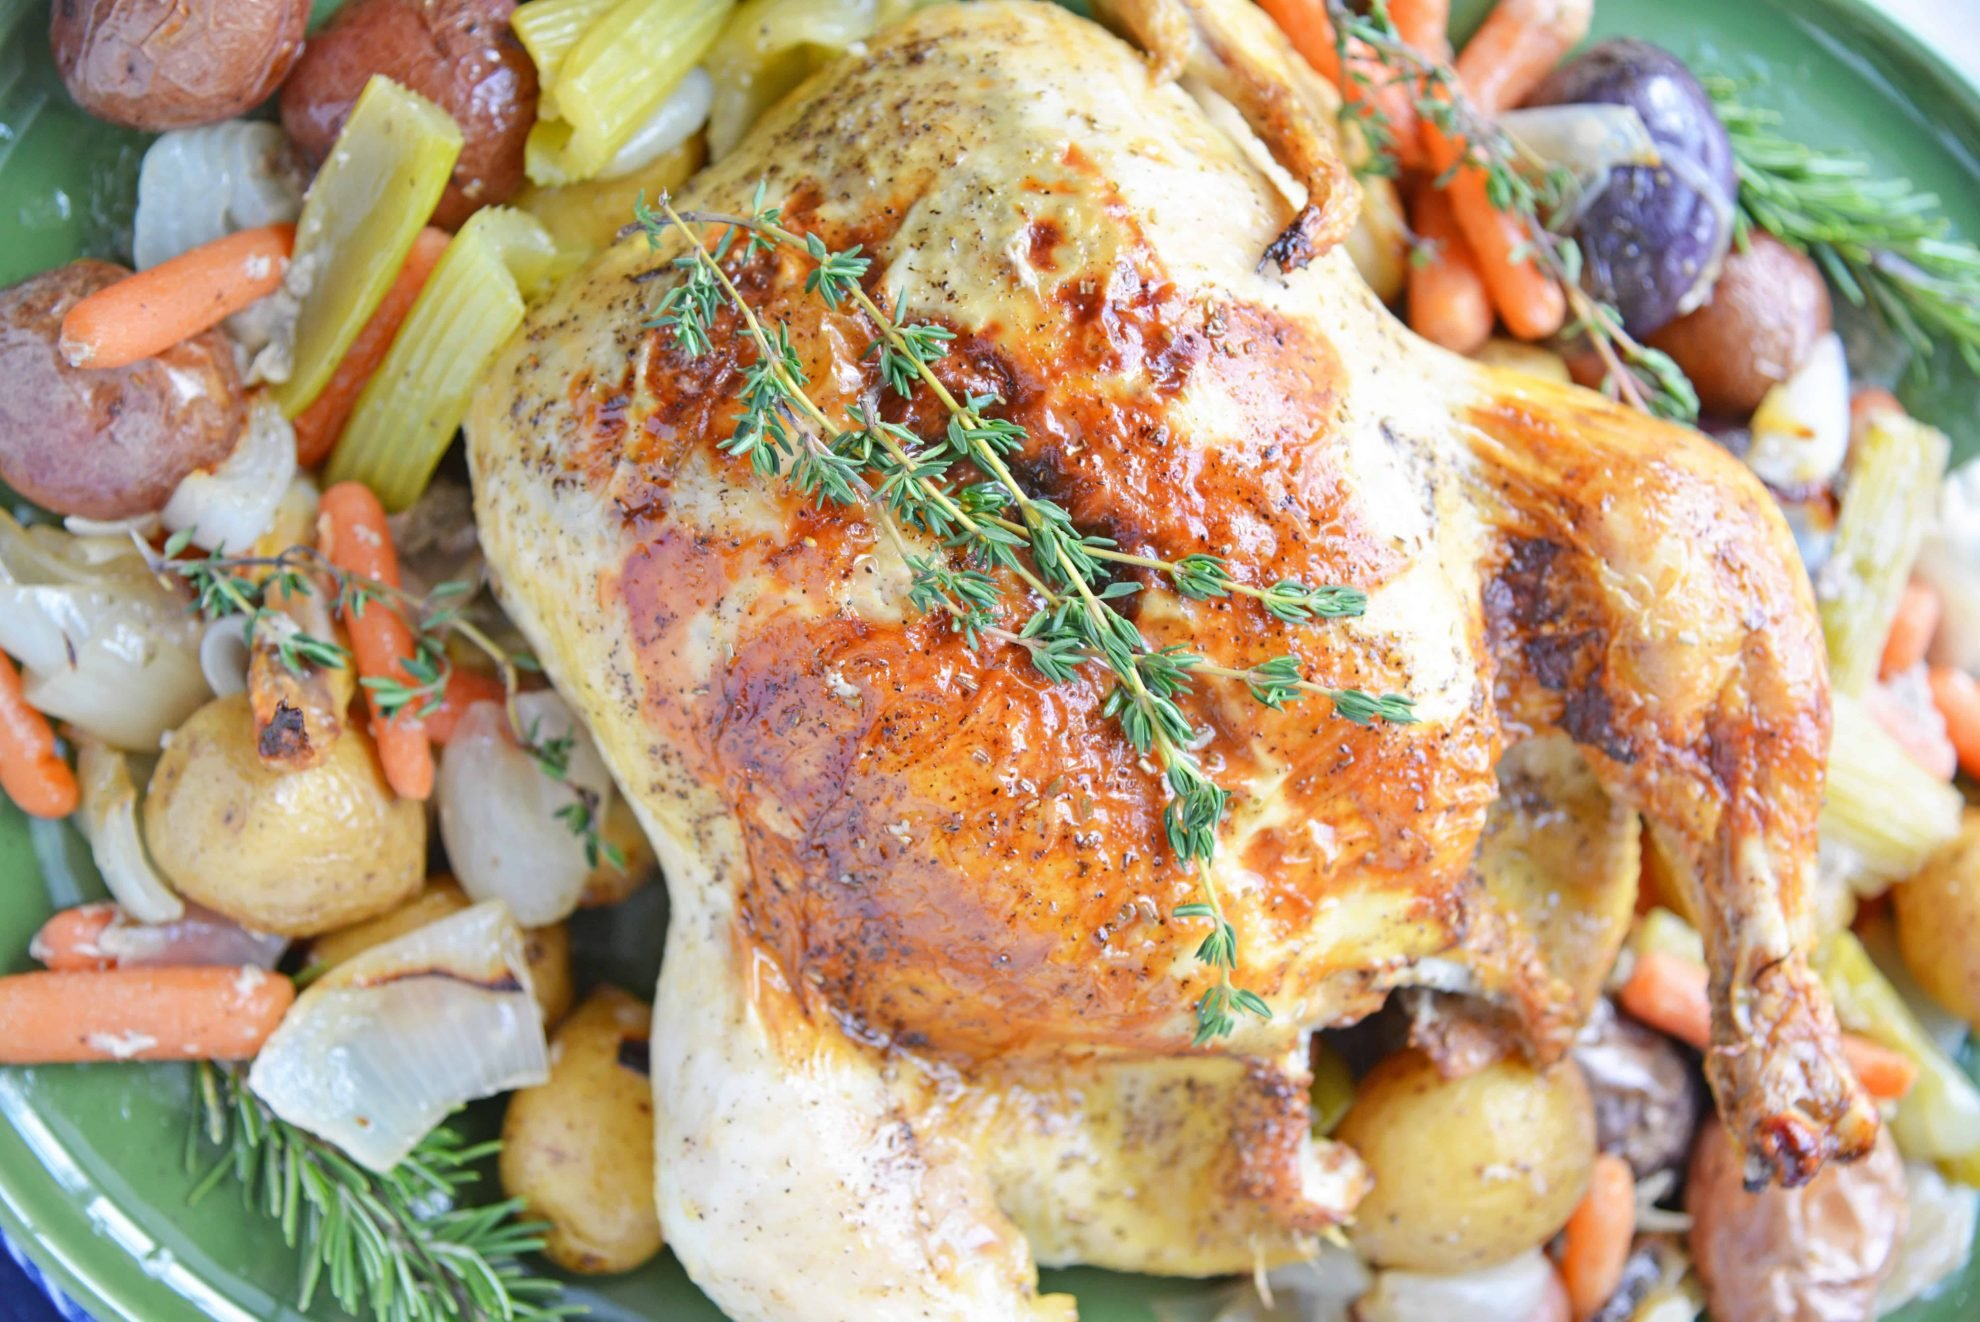 Oven roasted chicken with Thyme sprig